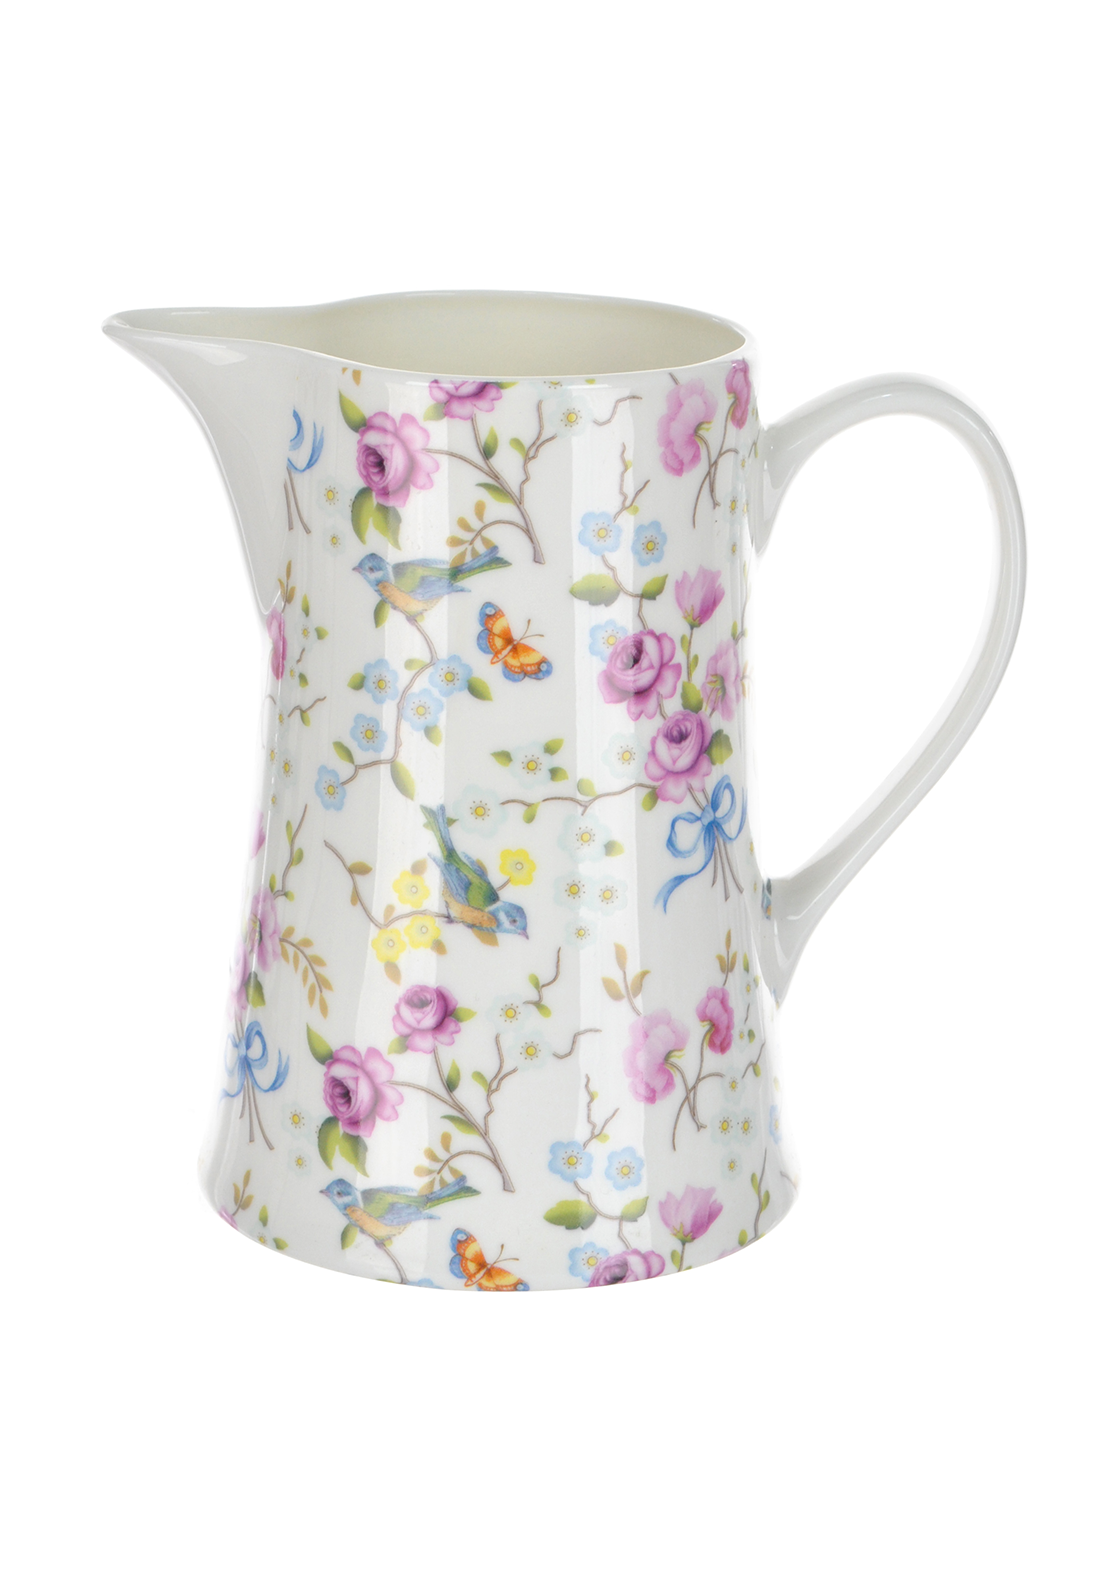 Shannon Bridge Ireland Bird Blossom Pint Jug, White/Multi Floral Print